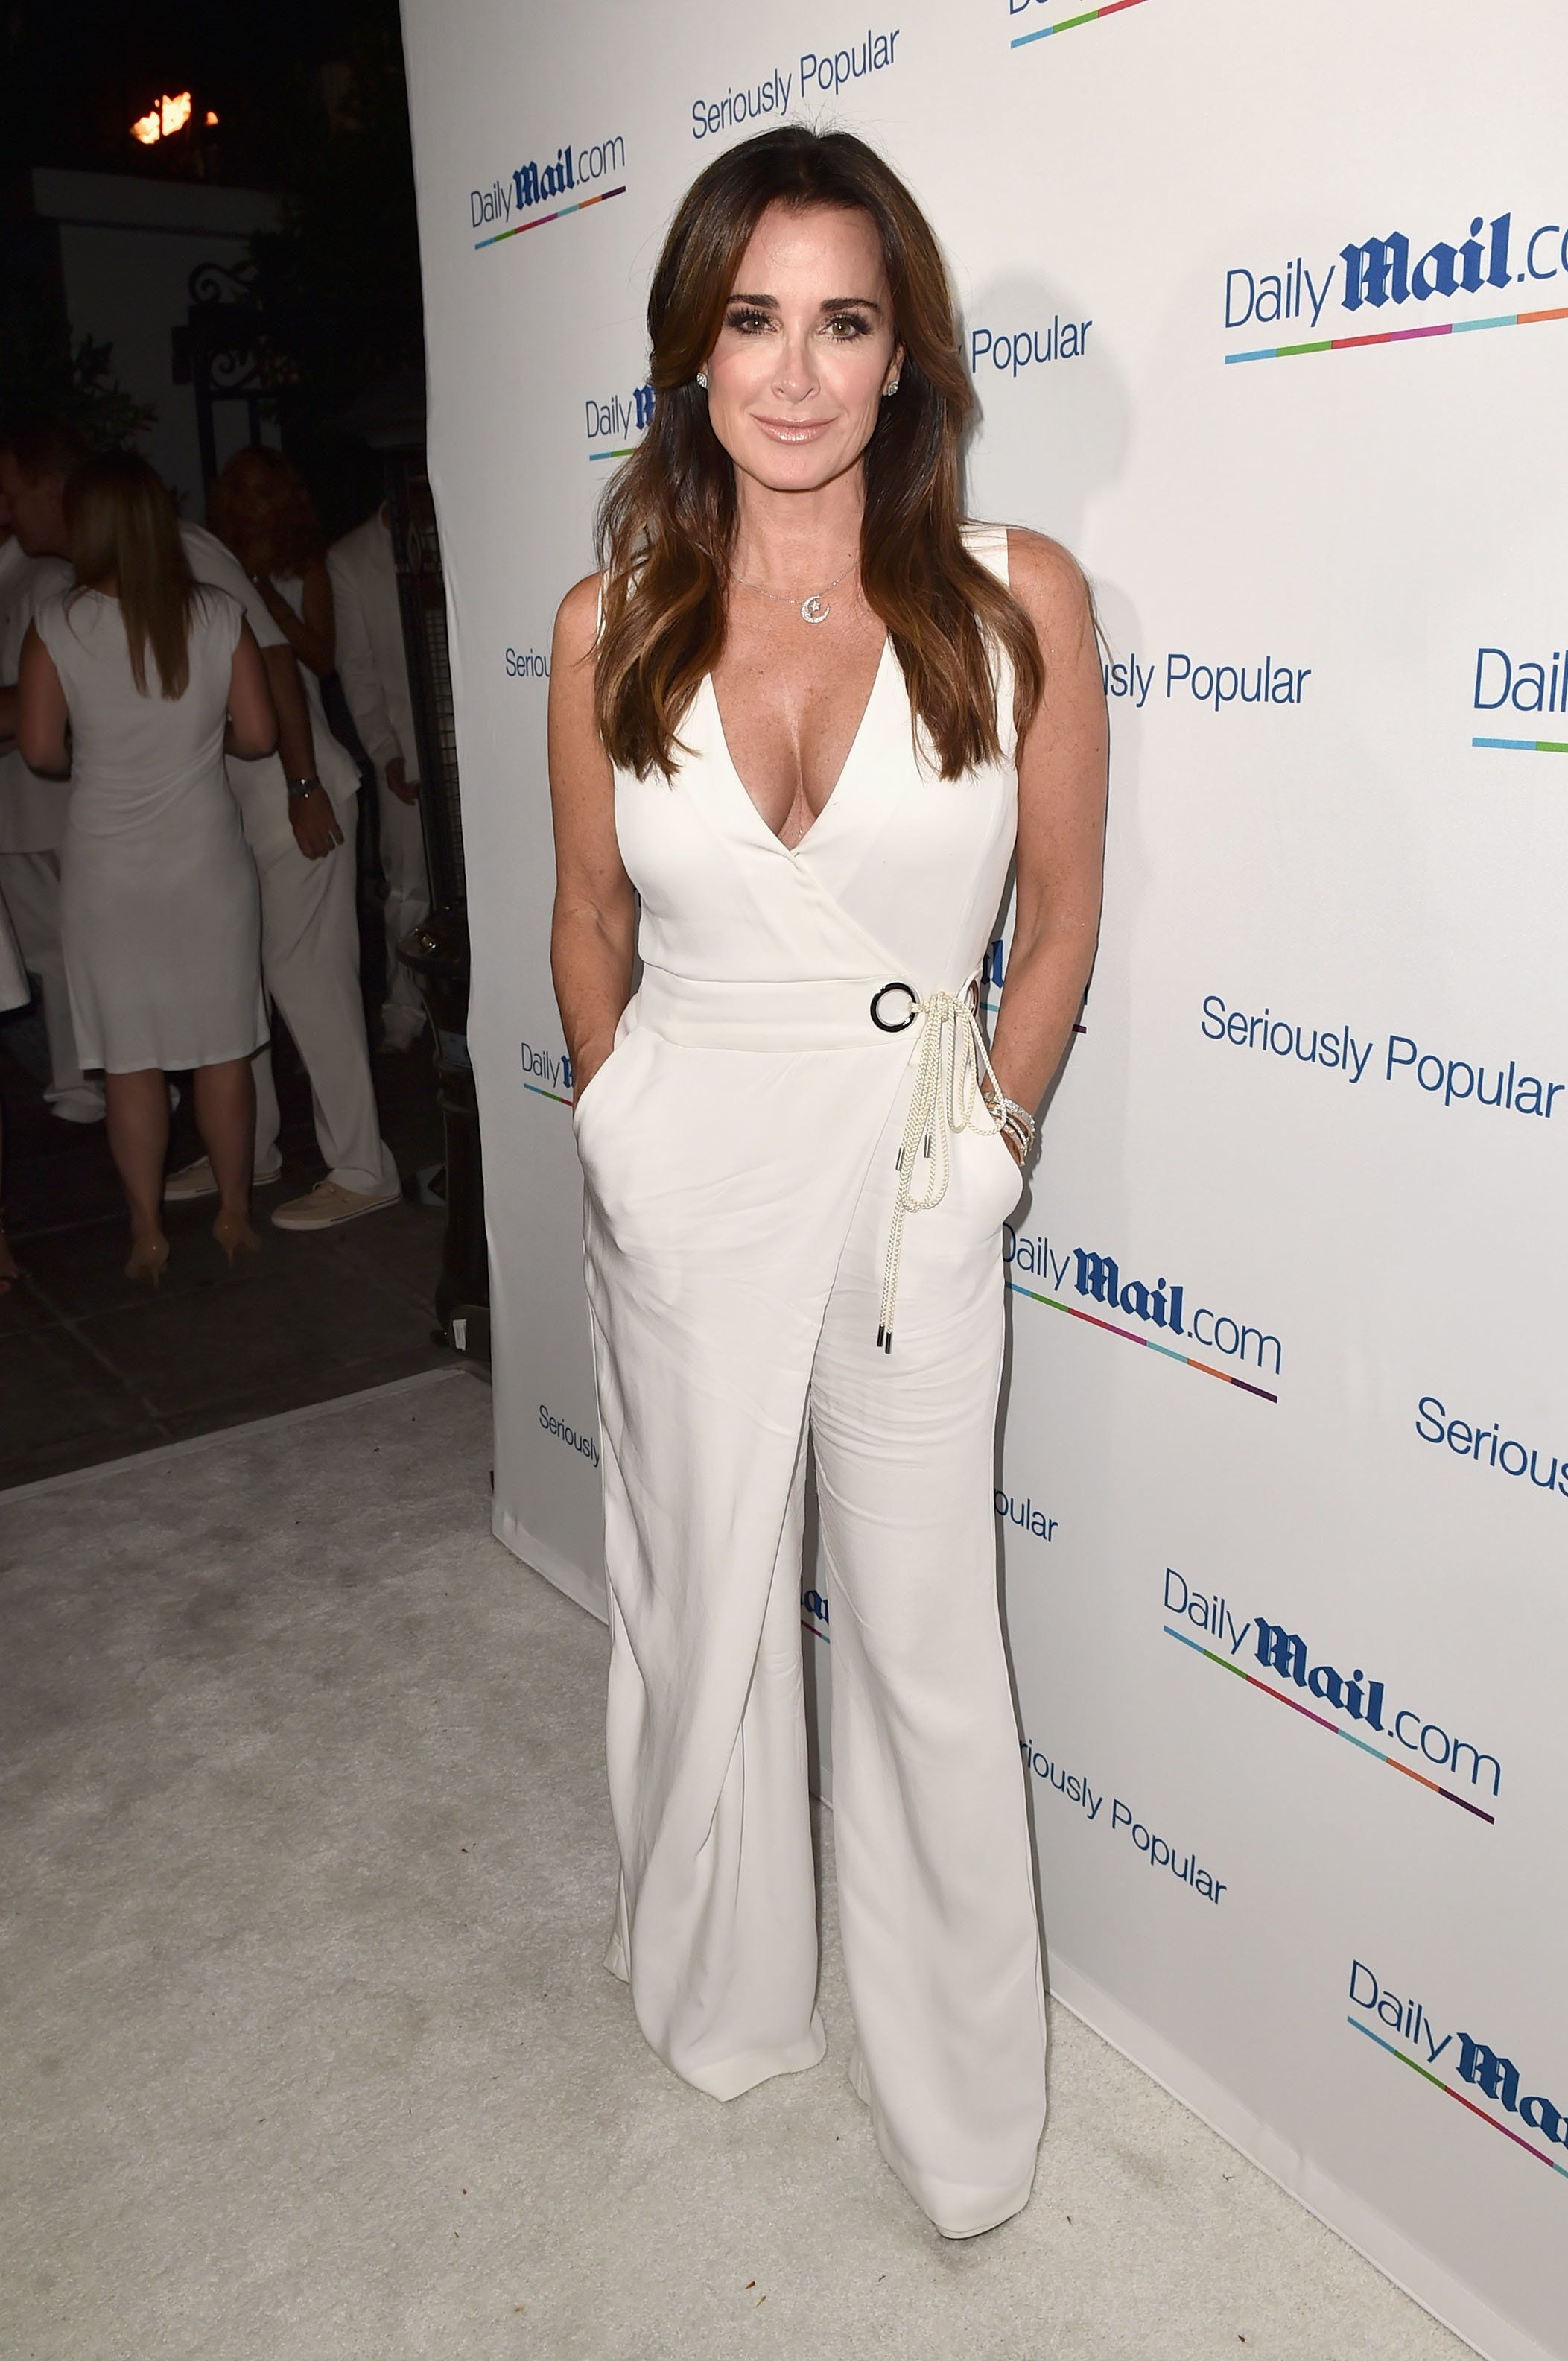 LOS ANGELES, CA - JULY 27:  TV personality Kyle Richards attends the Daily Mail Summer White Party with Lisa Vanderpump at Pump on July 27, 2016 in Los Angeles, California.  (Photo by Alberto E. Rodriguez/Getty Images for DailyMail.com)